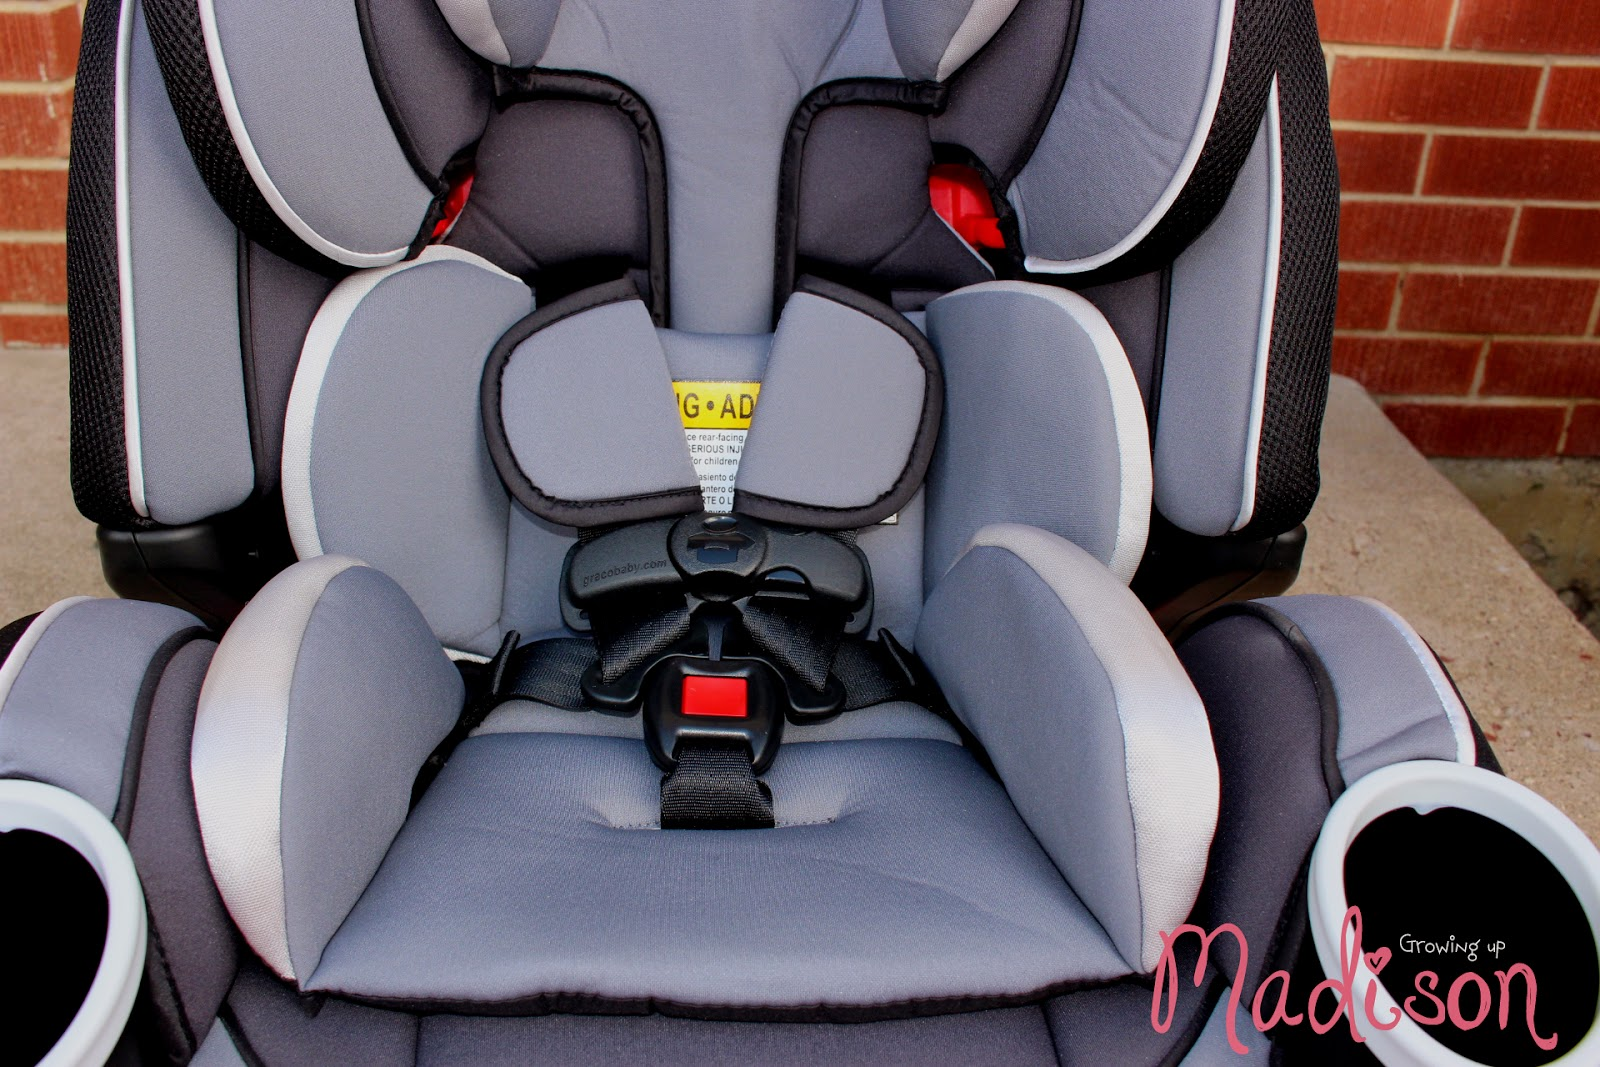 This Is Definitely One Feature That You Should Look For When Buying Your Car Seat A Steel Reinforced Frame Provides Strength And Durability In The